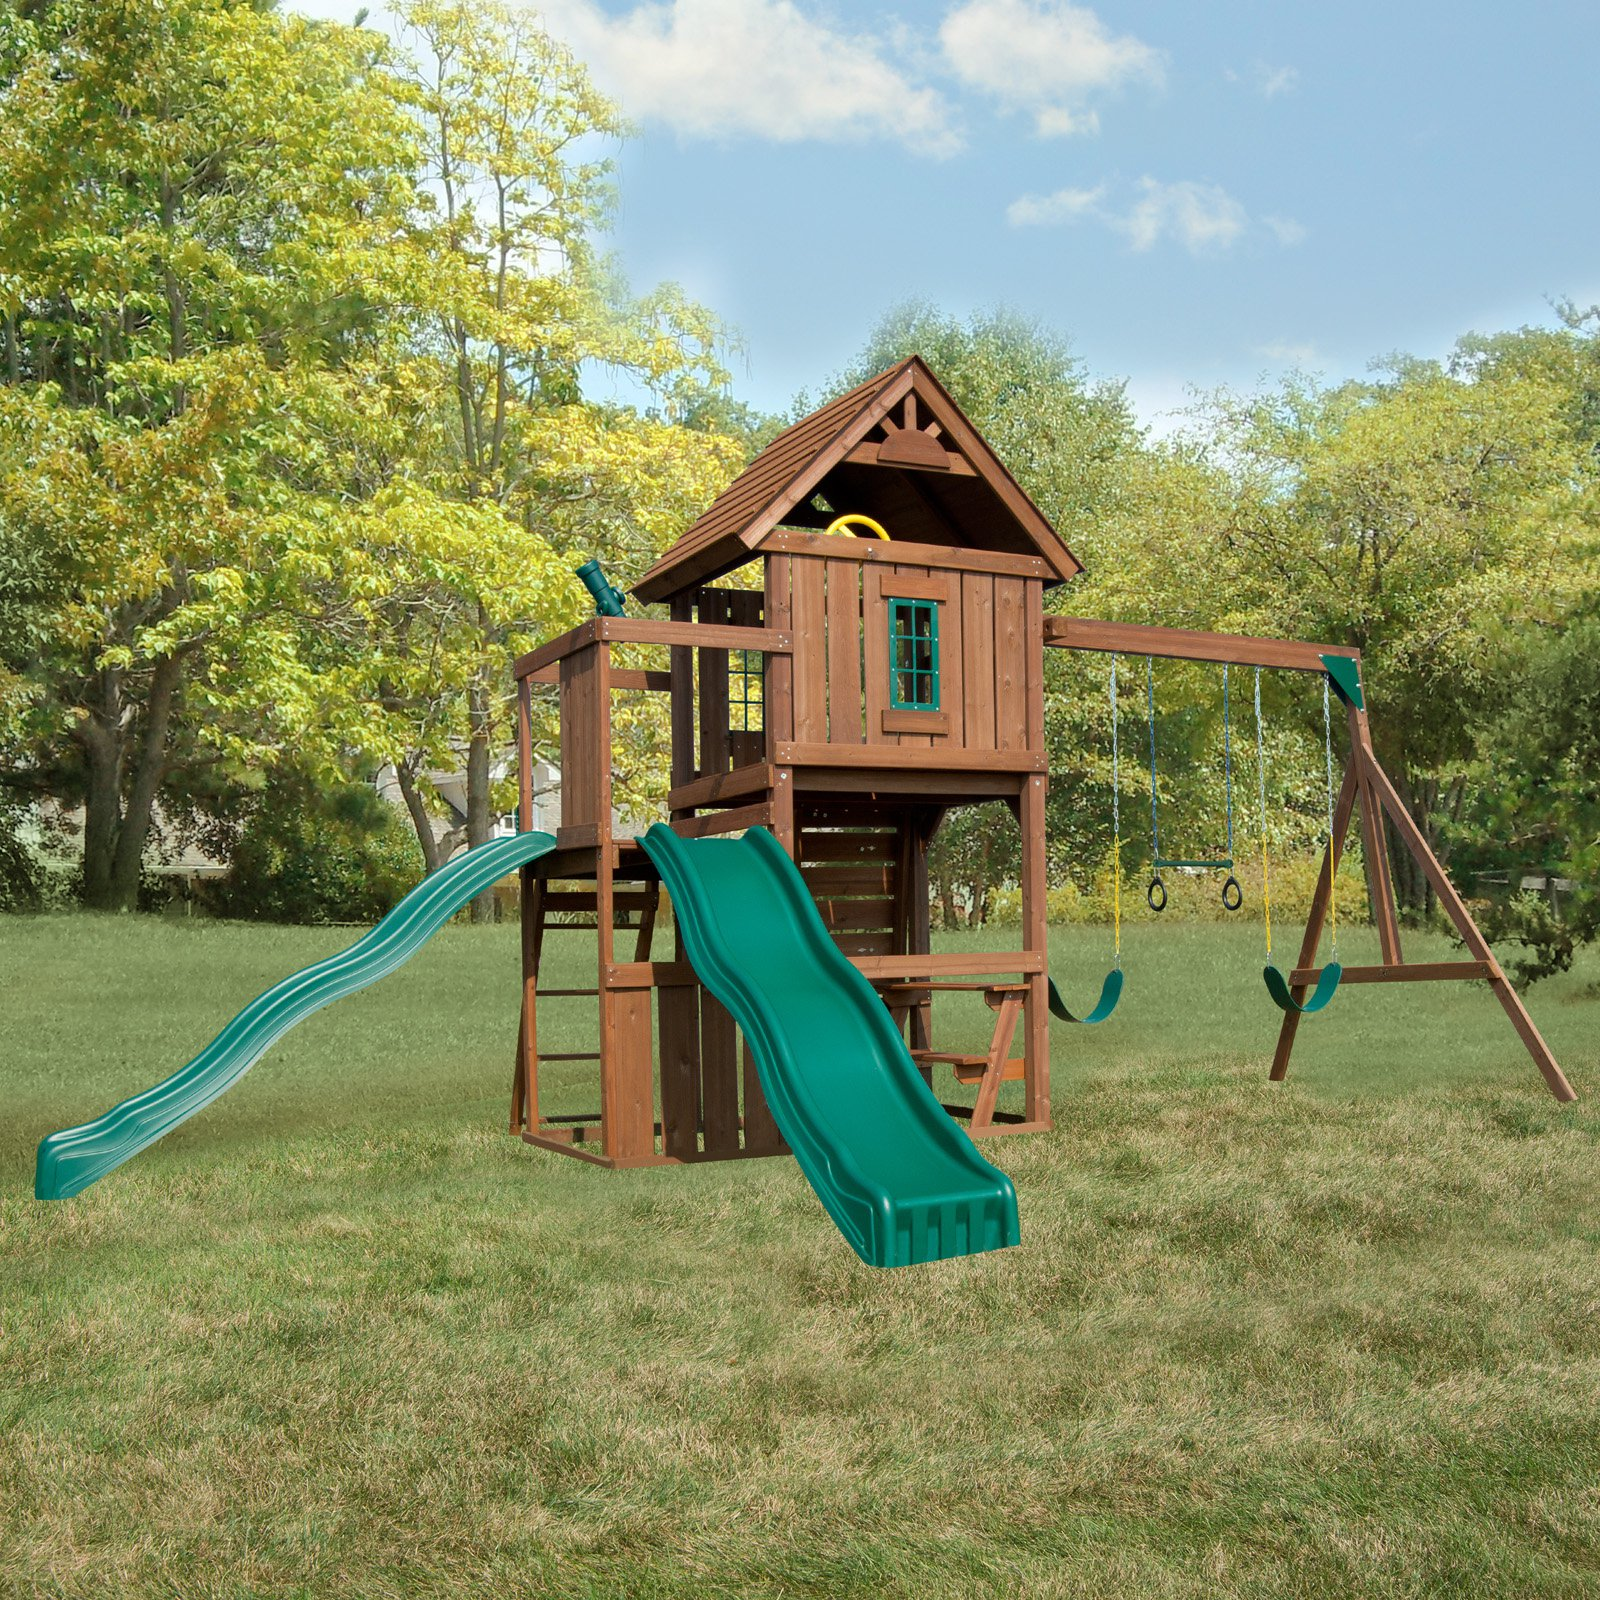 Swing-N-Slide Monteagle Wooden Swing Set